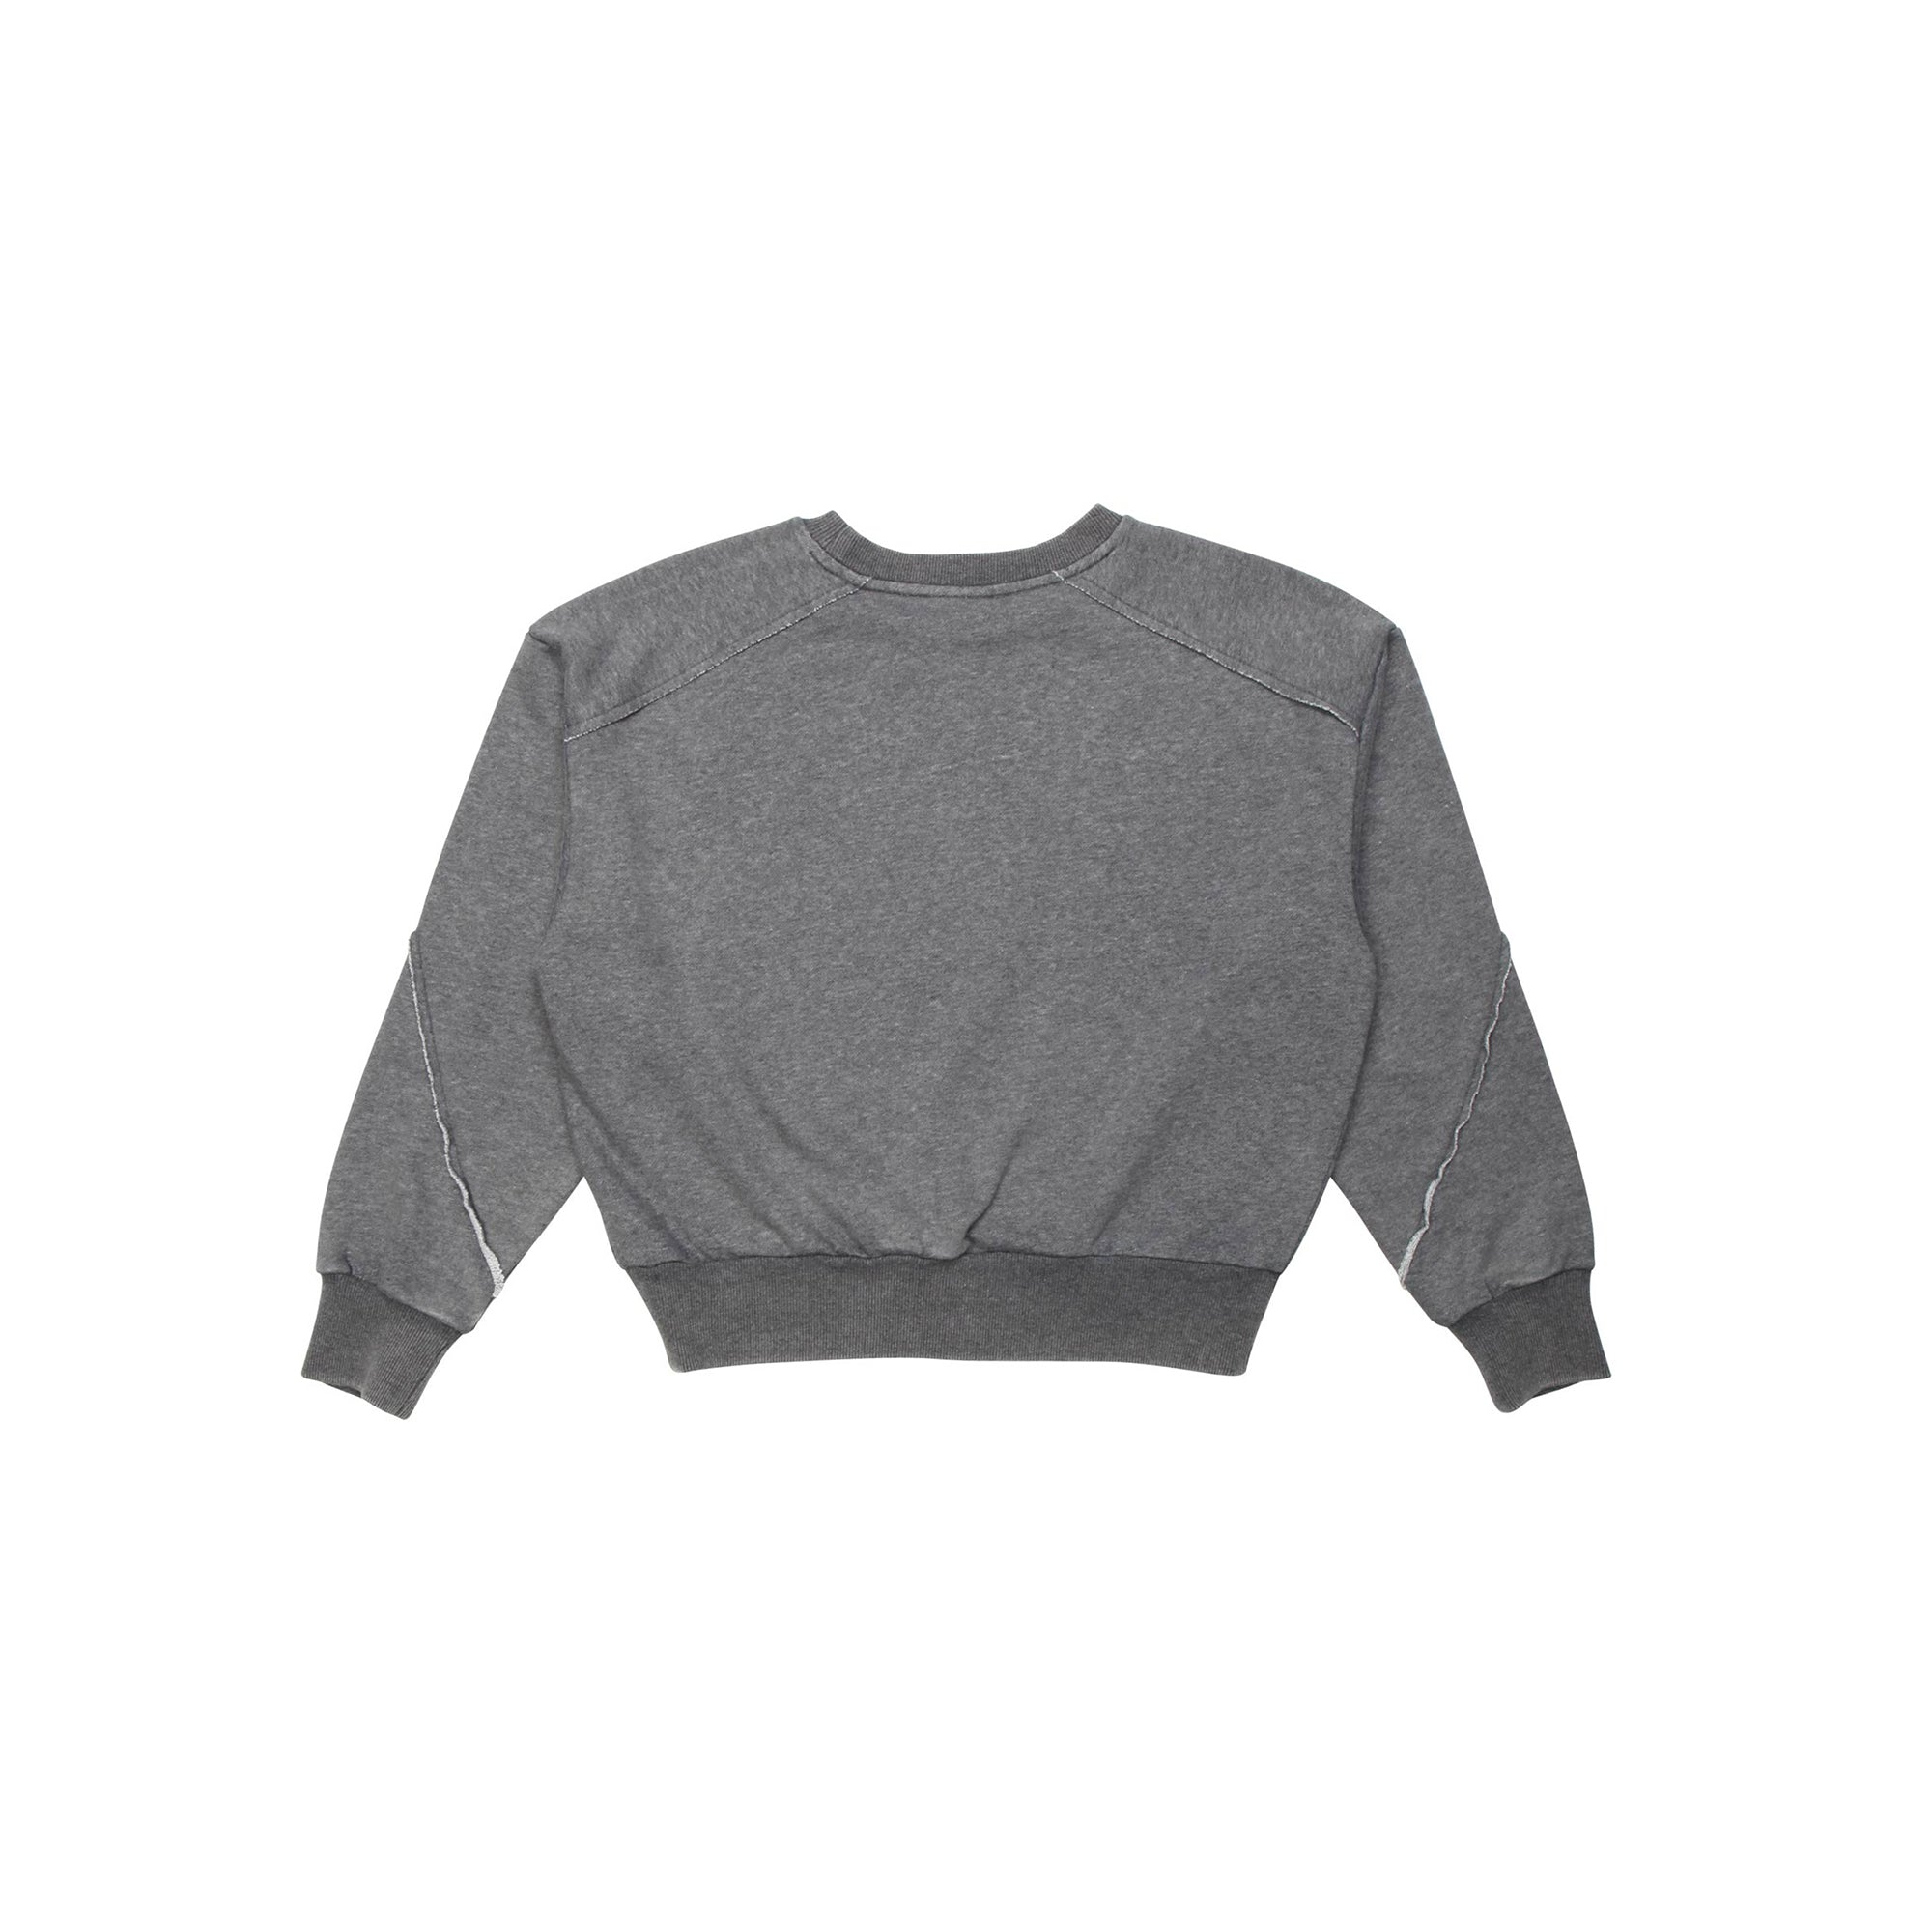 Tina - Charcoal Heather